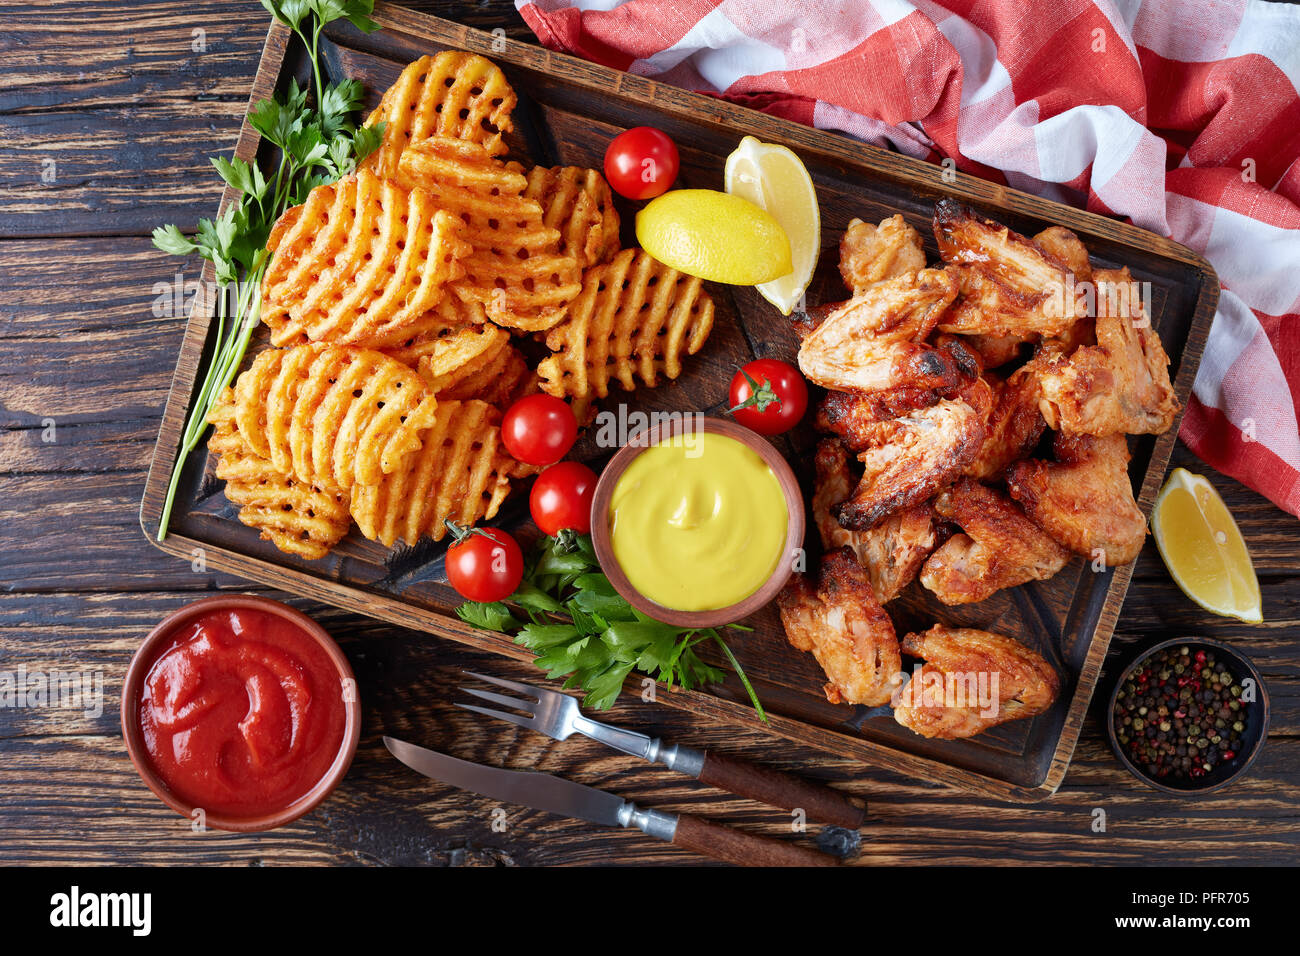 fried chicken wings, Crispy Potato Criss Cross Fries on a clay plates on a wooden table with mustard and tomato sauce dipping, view from above, close- - Stock Image